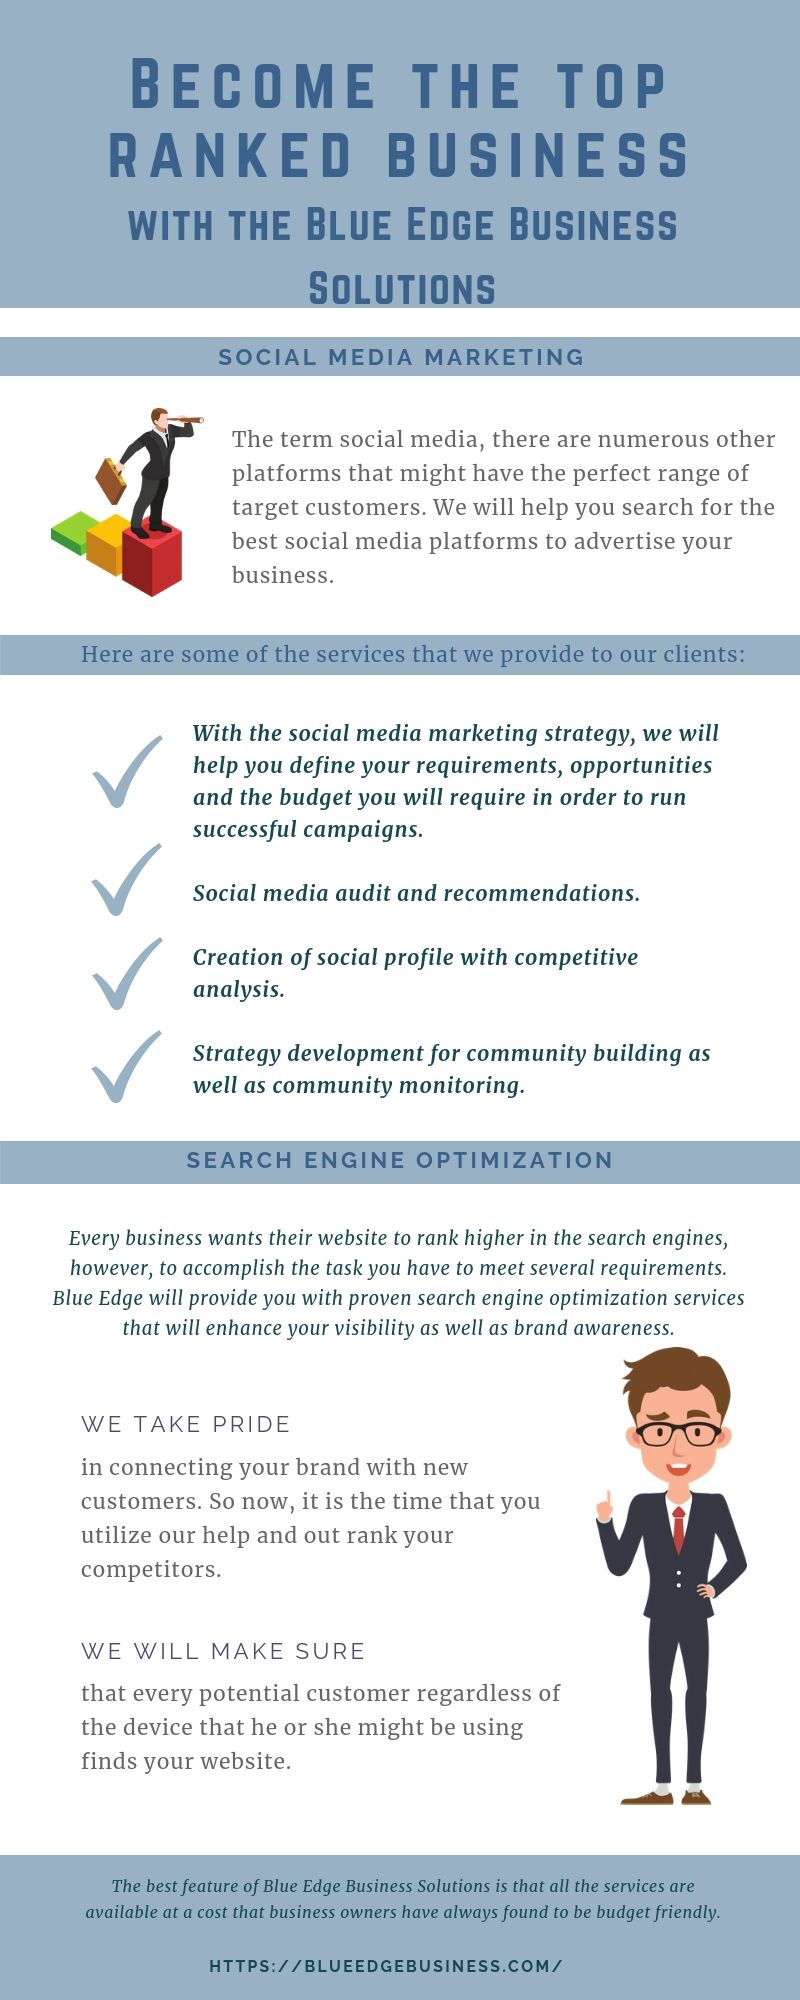 The best feature of Blue Edge Business Solutions is that